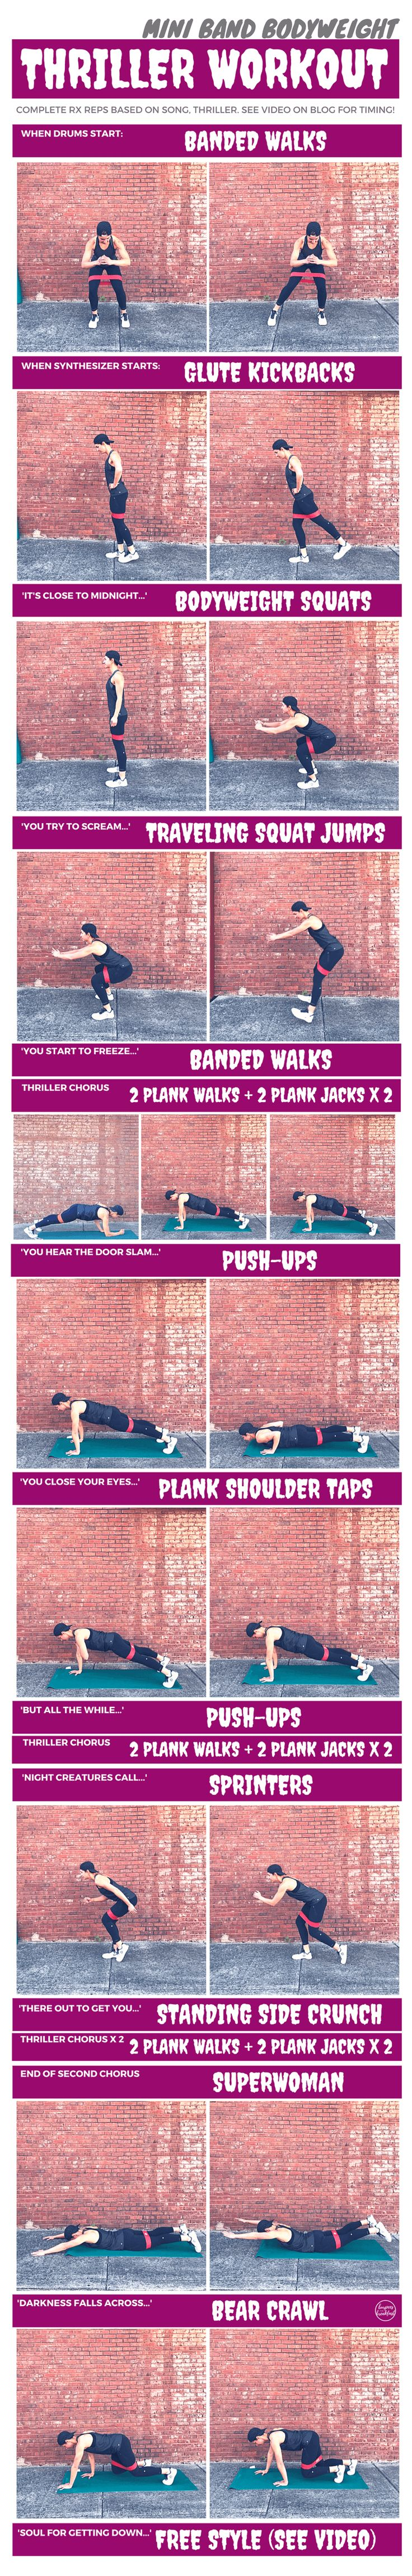 Mini Band Bodyweight Thriller Workout   Burpees for Breakfast